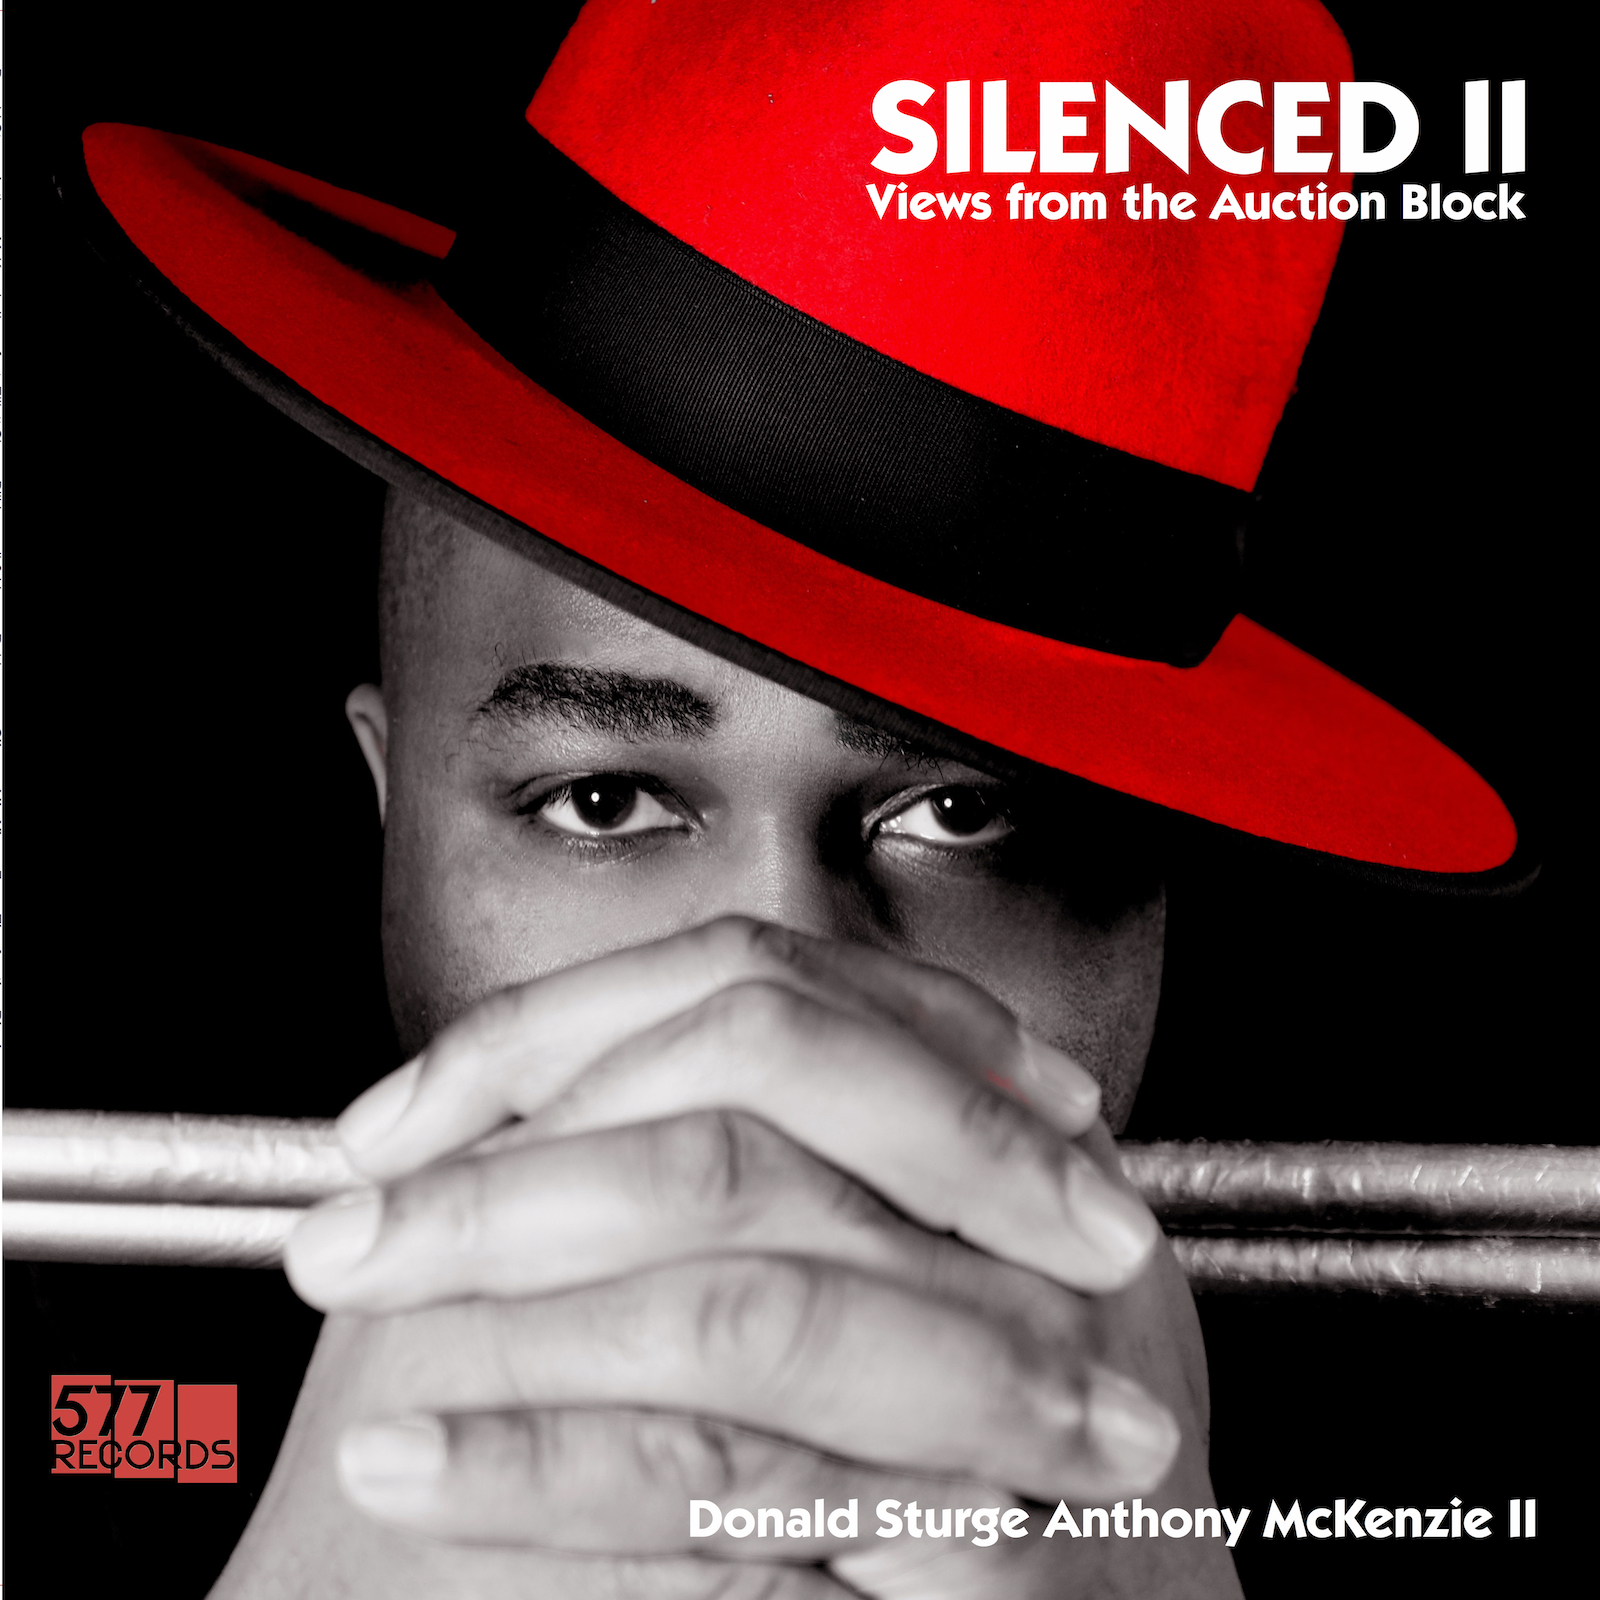 DONALD STURGE ANTHONY McKENZIE II SILENCED II feat. ELLIOTT SHARP, VERNON REID & BILL LASWELL